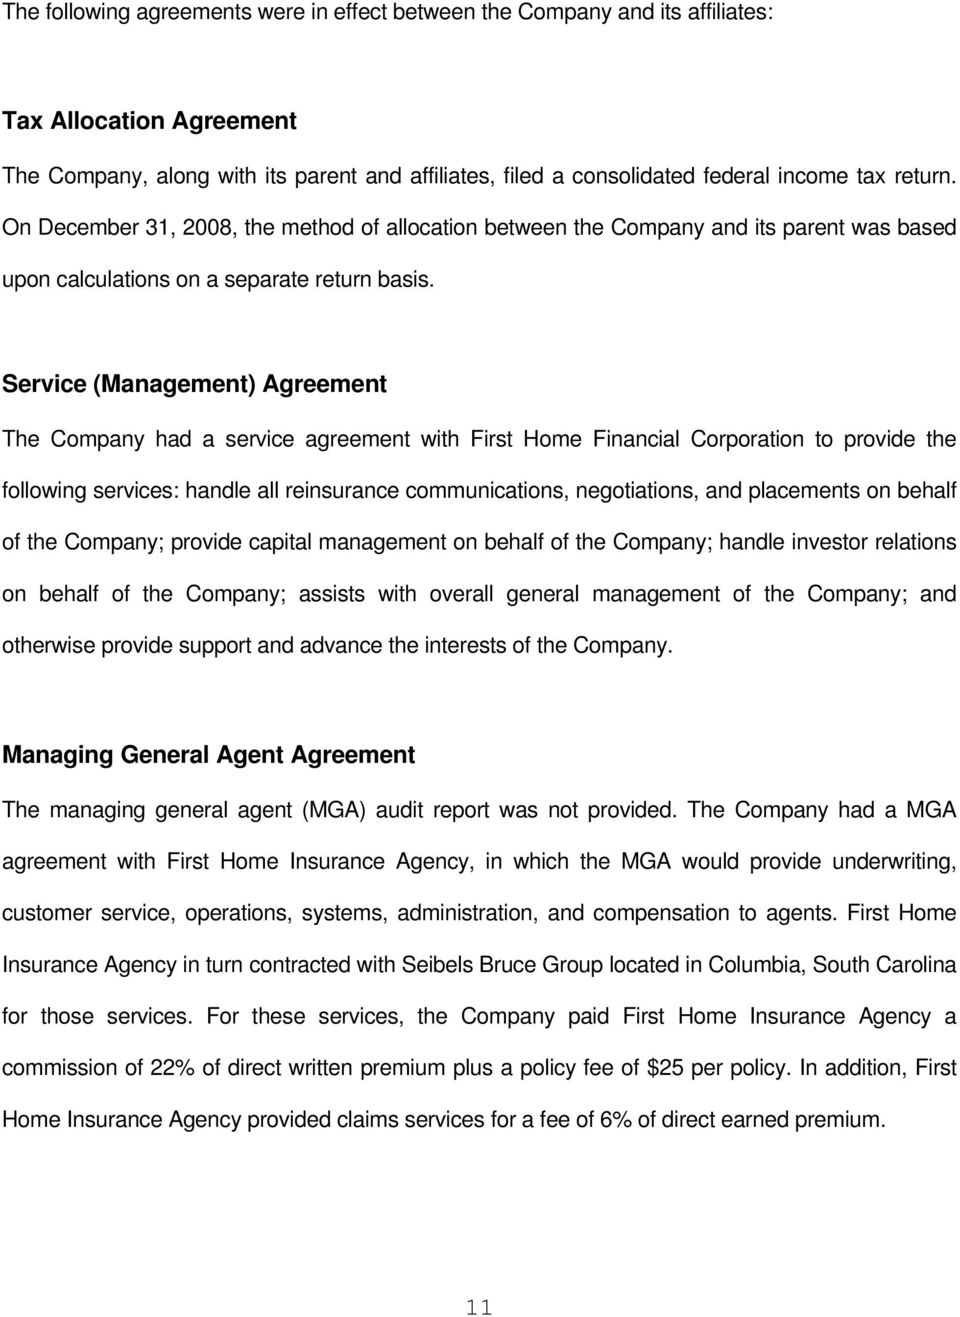 Service (Management) Agreement The Company had a service agreement with First Home Financial Corporation to provide the following services: handle all reinsurance communications, negotiations, and